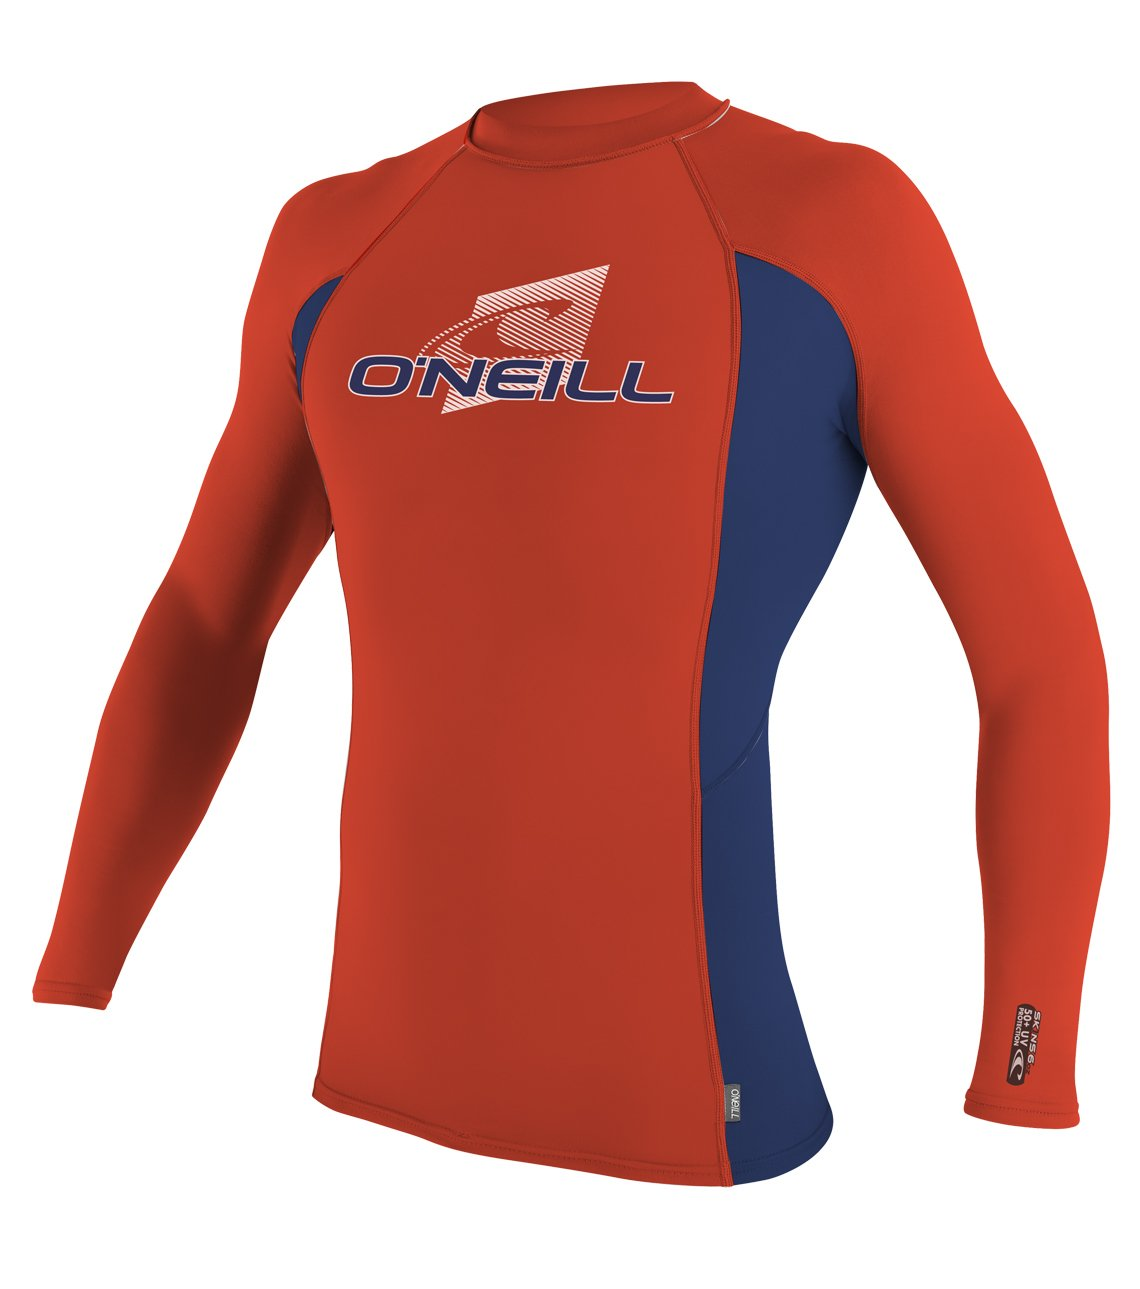 O'Neill Youth Premium Skins UPF 50+ Long Sleeve Rash Guard, Neon Red/Navy/Neon Red, 8